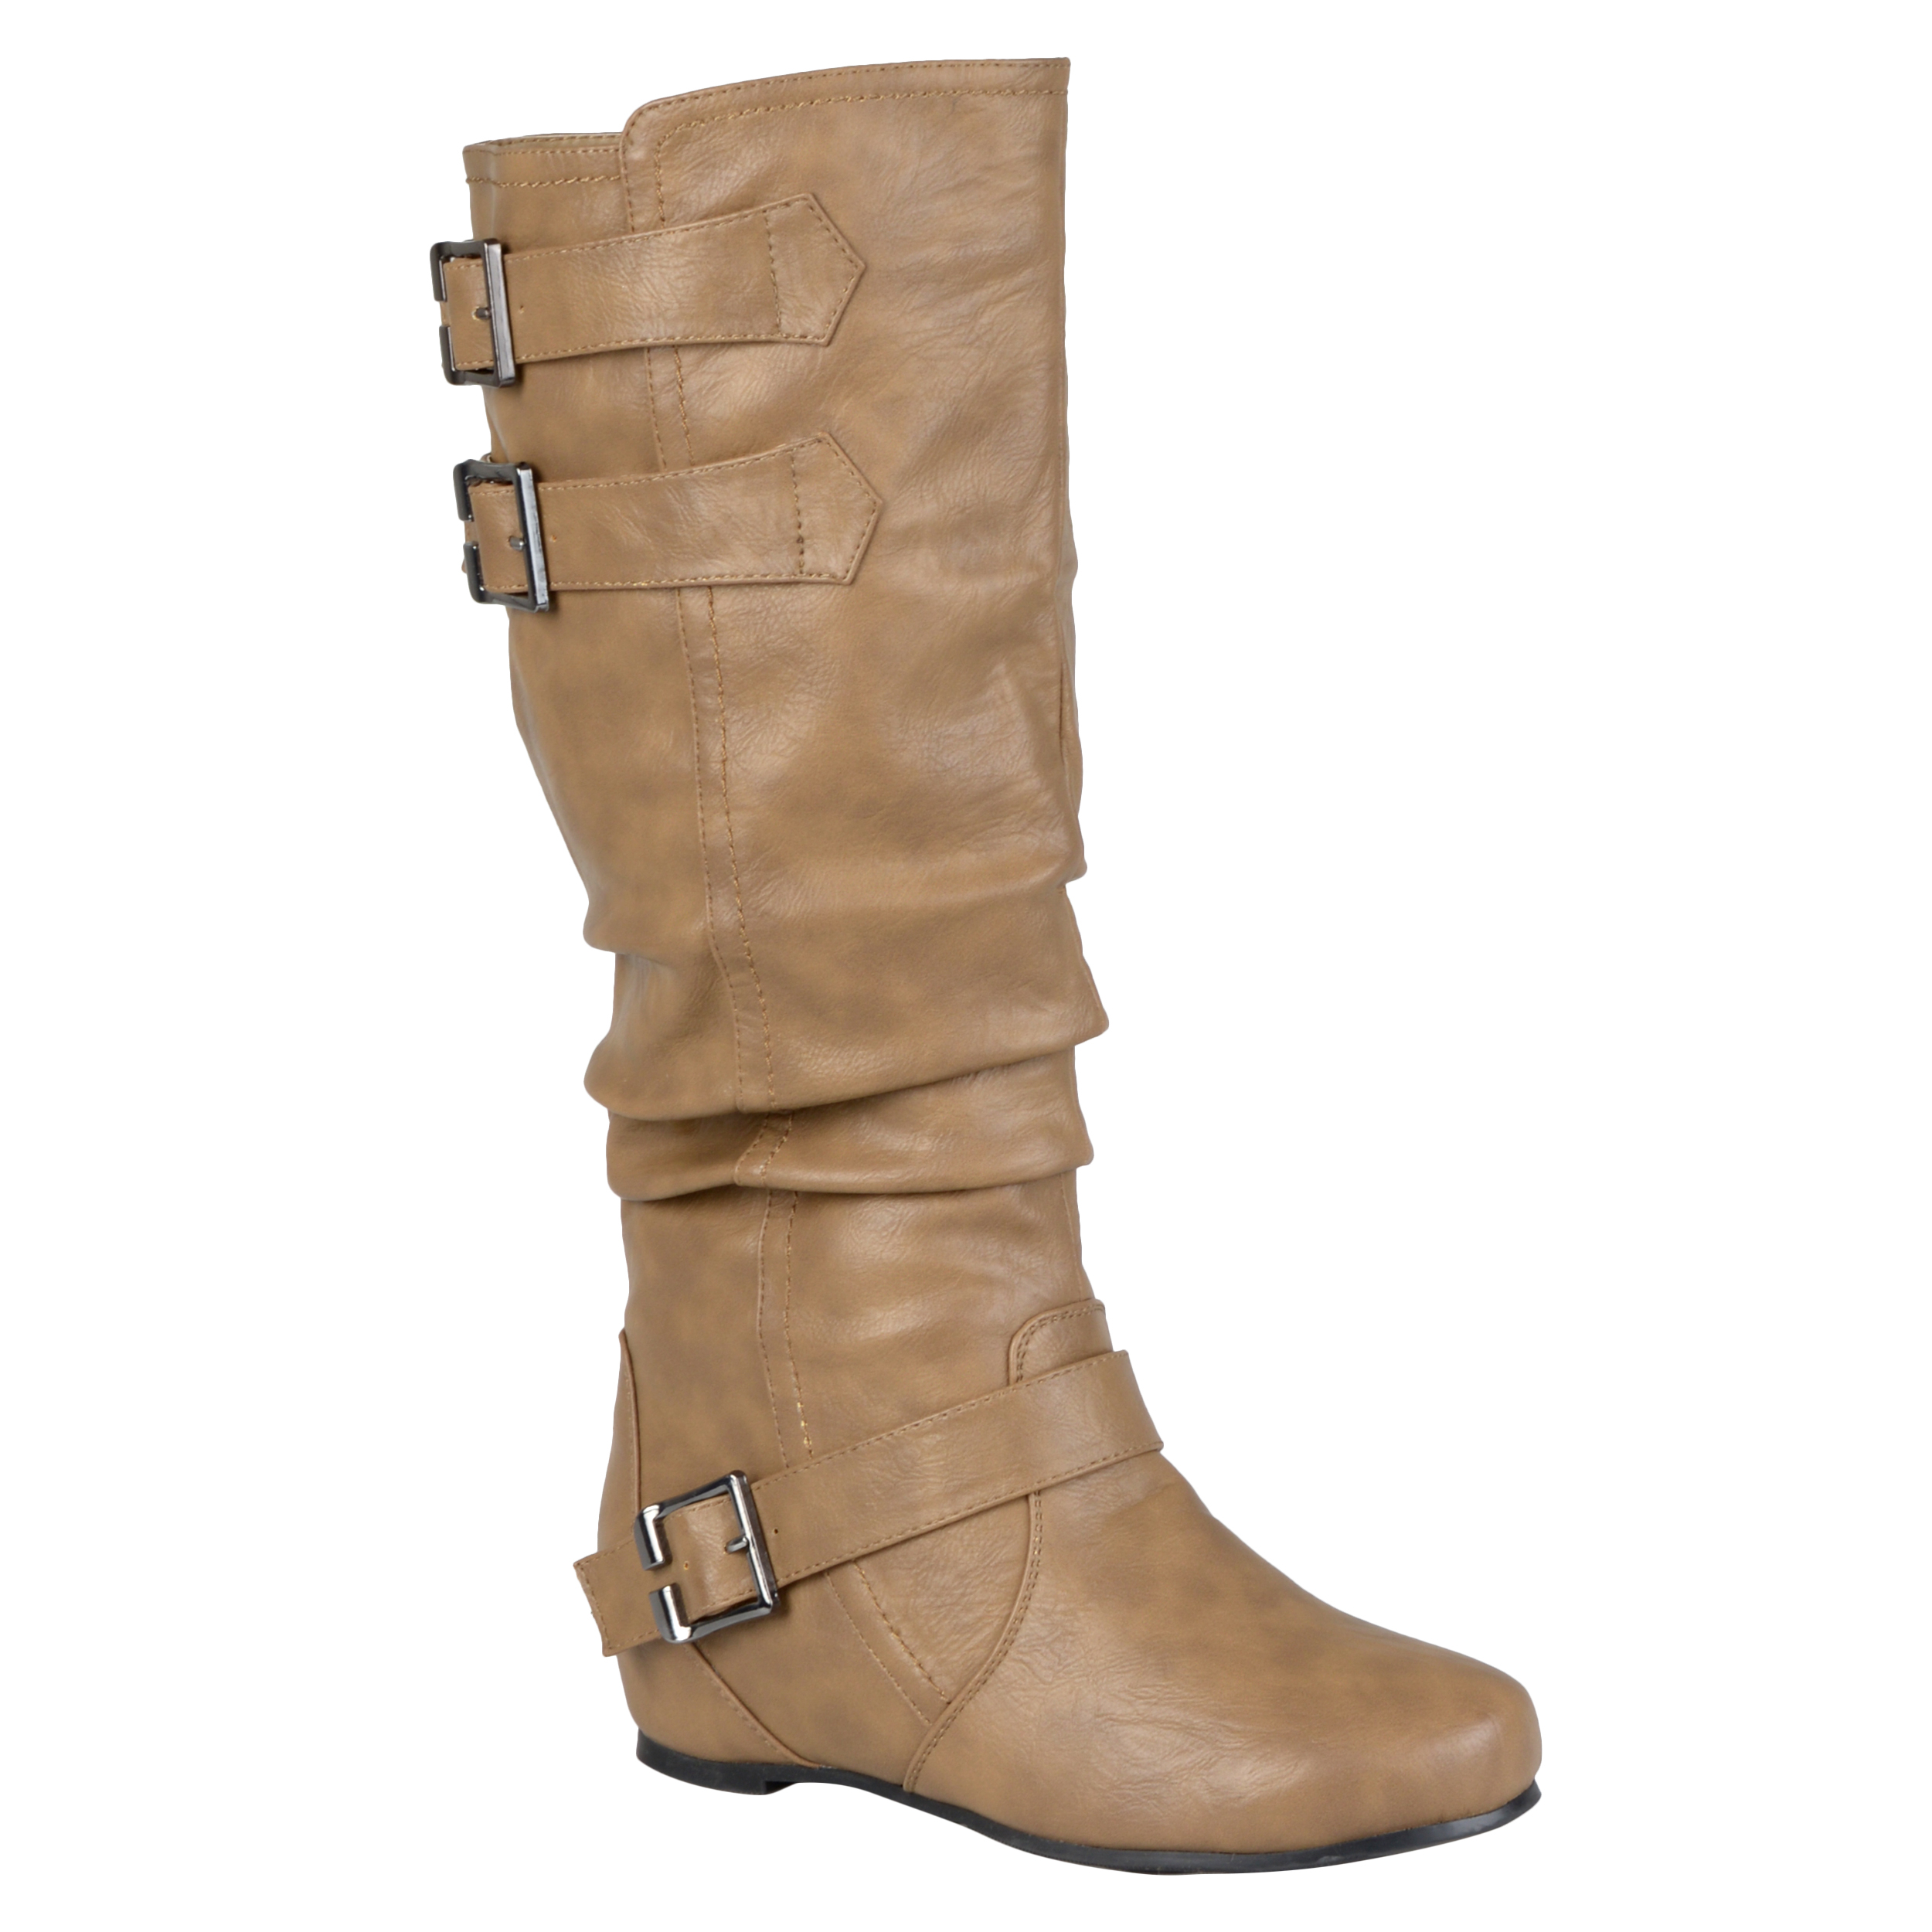 Brinley Co Womens Round Toe Buckle Detail Boots at Sears.com